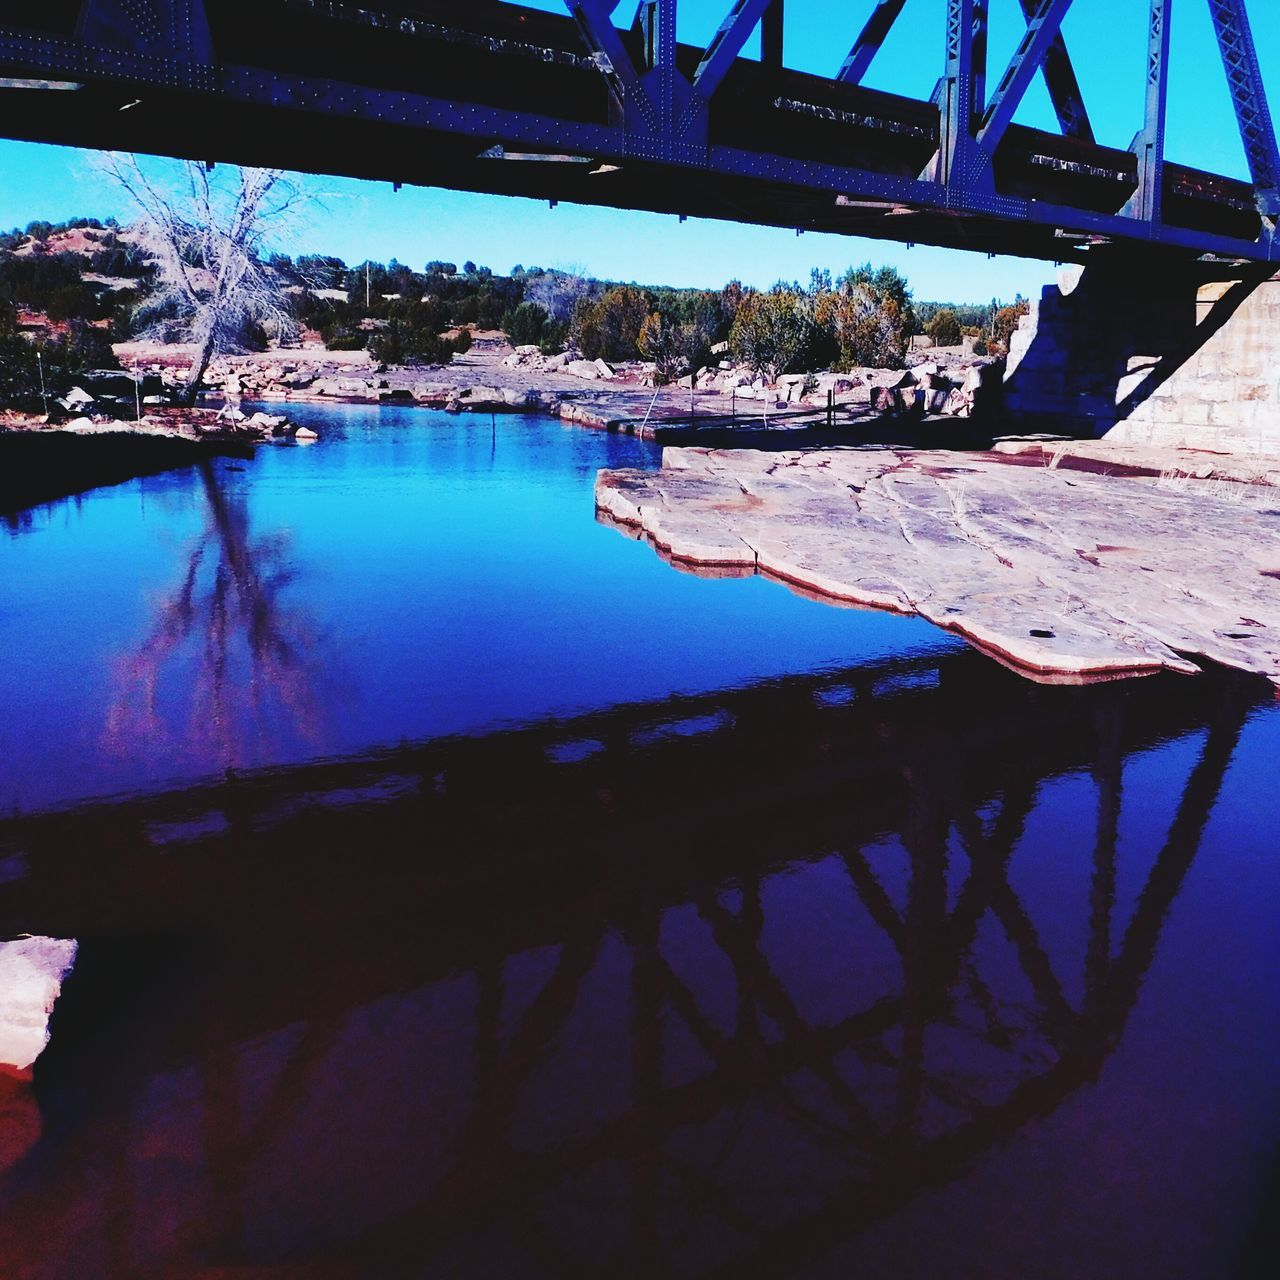 Reflection Water Outdoors Bridge - Man Made Structure Cloud - Sky Newmexicoskies Newmexicophotography NewMexicoTRUE Newmexicoskys Desert Scenics Rural Scene Sky